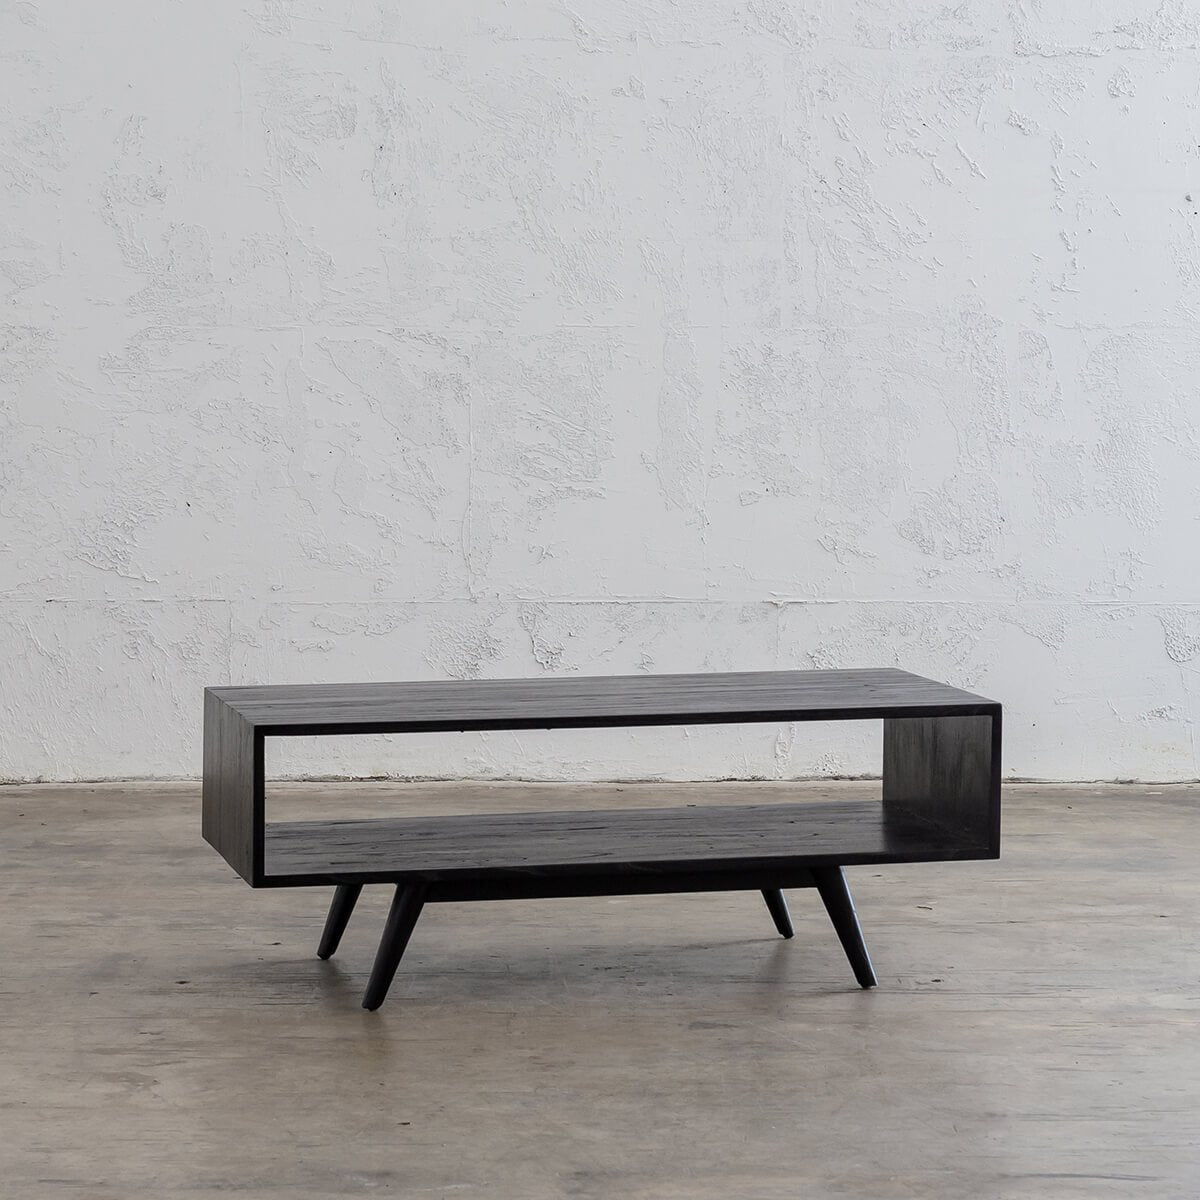 AMARA MID CENTURY TIMBER COFFEE TABLE  |  RECTANGULAR WITH OPEN SHELF  |  BLACK